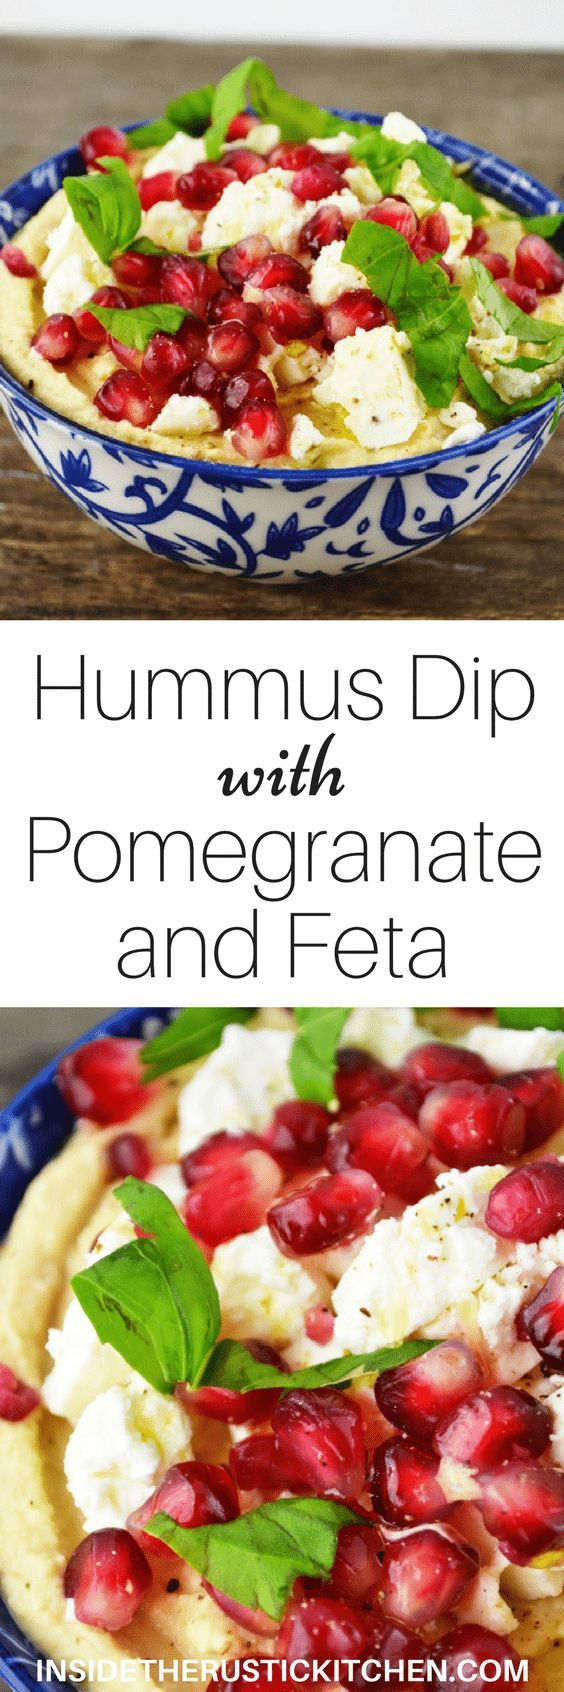 This Hummus Dip with Pomegranate and Feta is so delicious that it'll convince you to NEVER buy shop bought hummus ever again! http://www.insidetherustickitchen.com